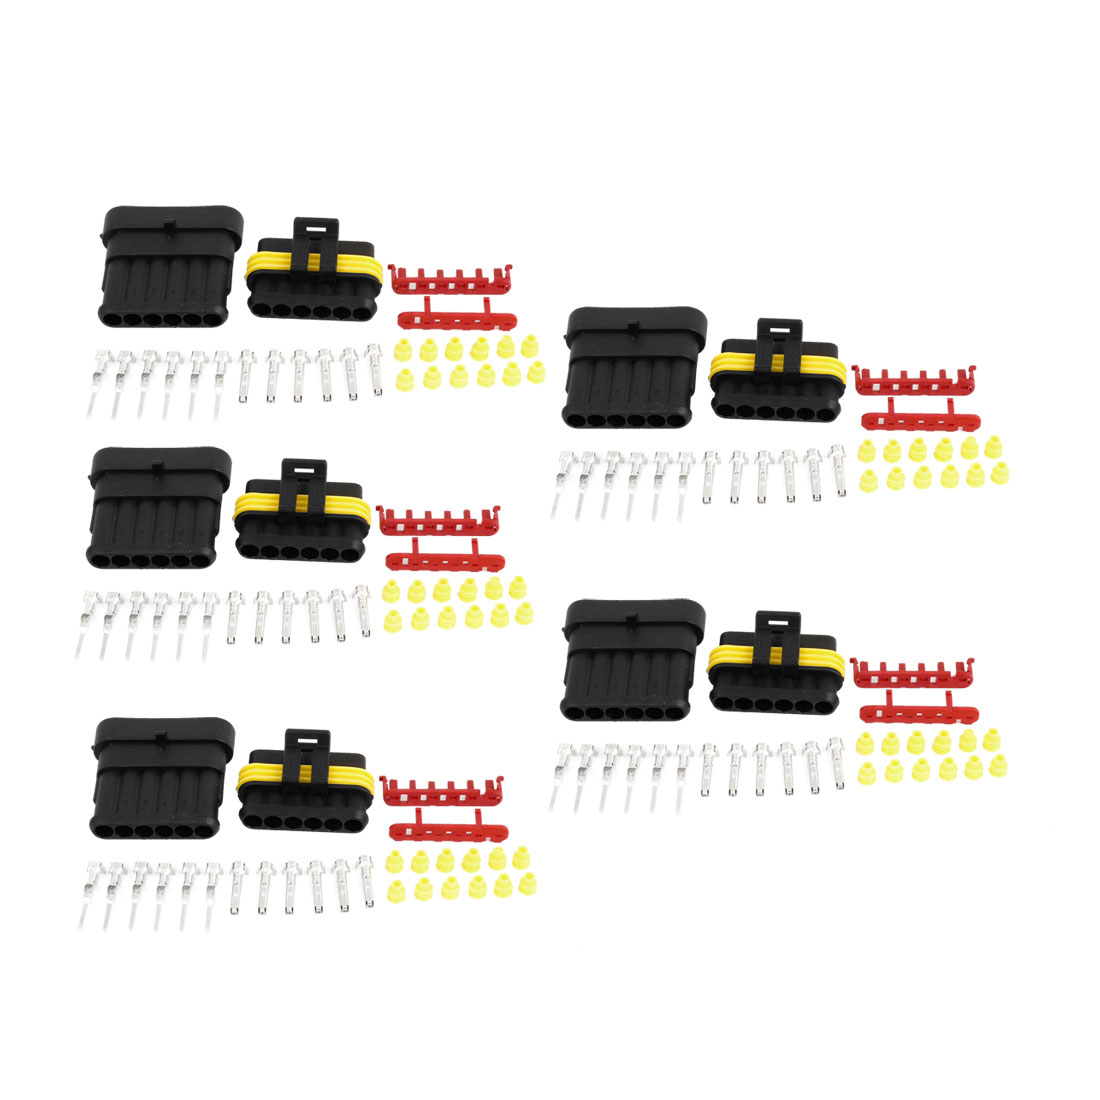 5 Set 6 Pin Waterproof Connector 6 Way Connector Car Truck Boat ATV UTV RV